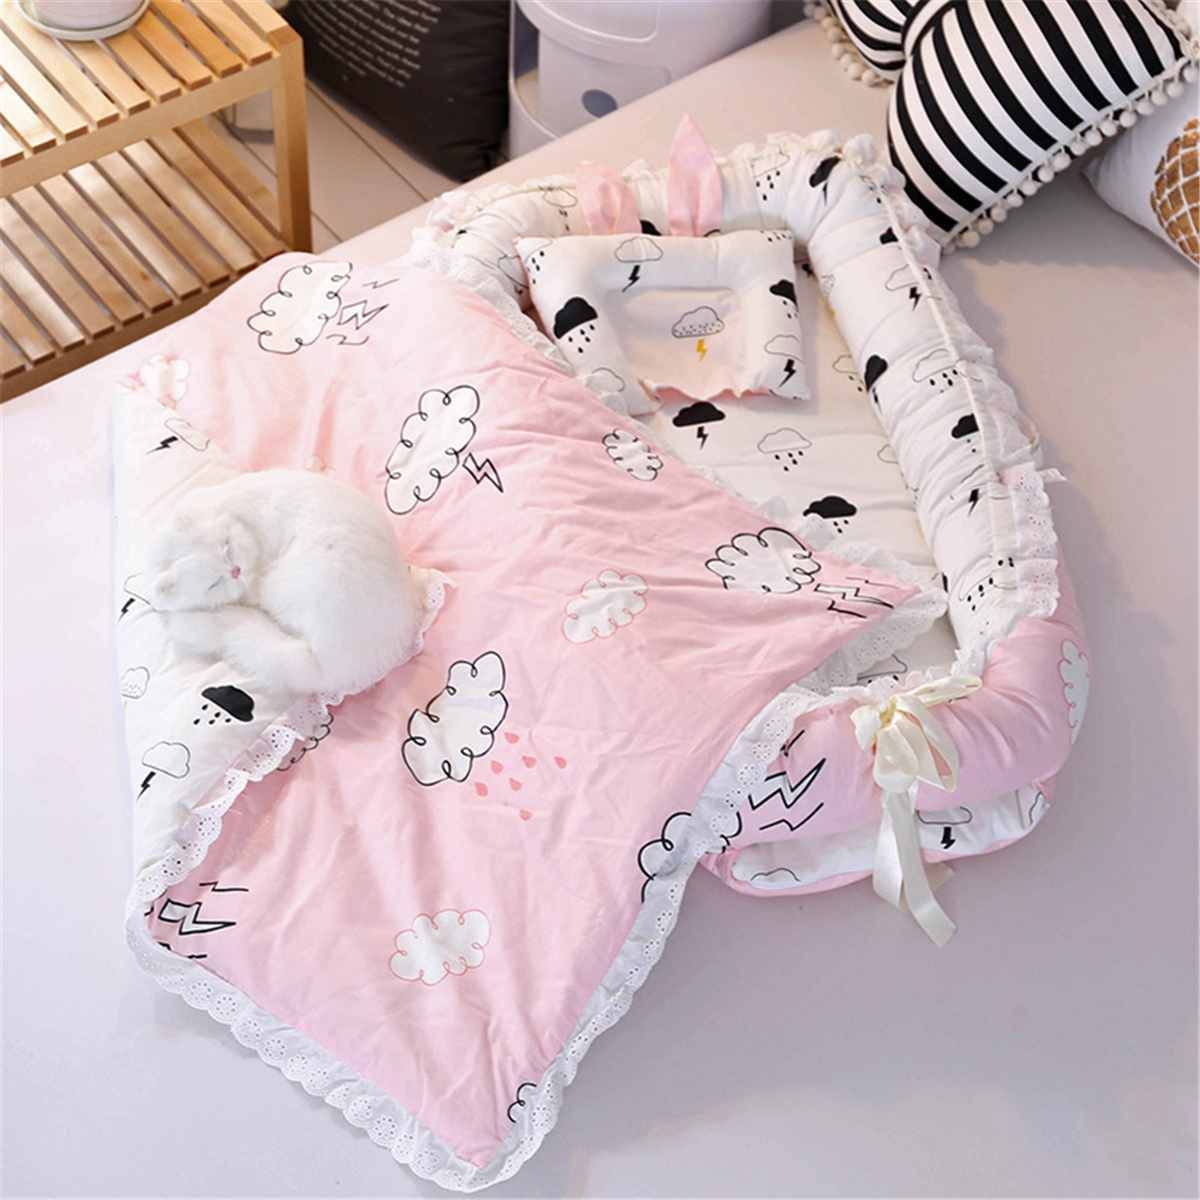 Baby Sleep Nest Bed Pillow Boys Girls Breathable Cotton Sleeping Crib  Newborn Baby Sleep Bed Portable Detachable Mattress